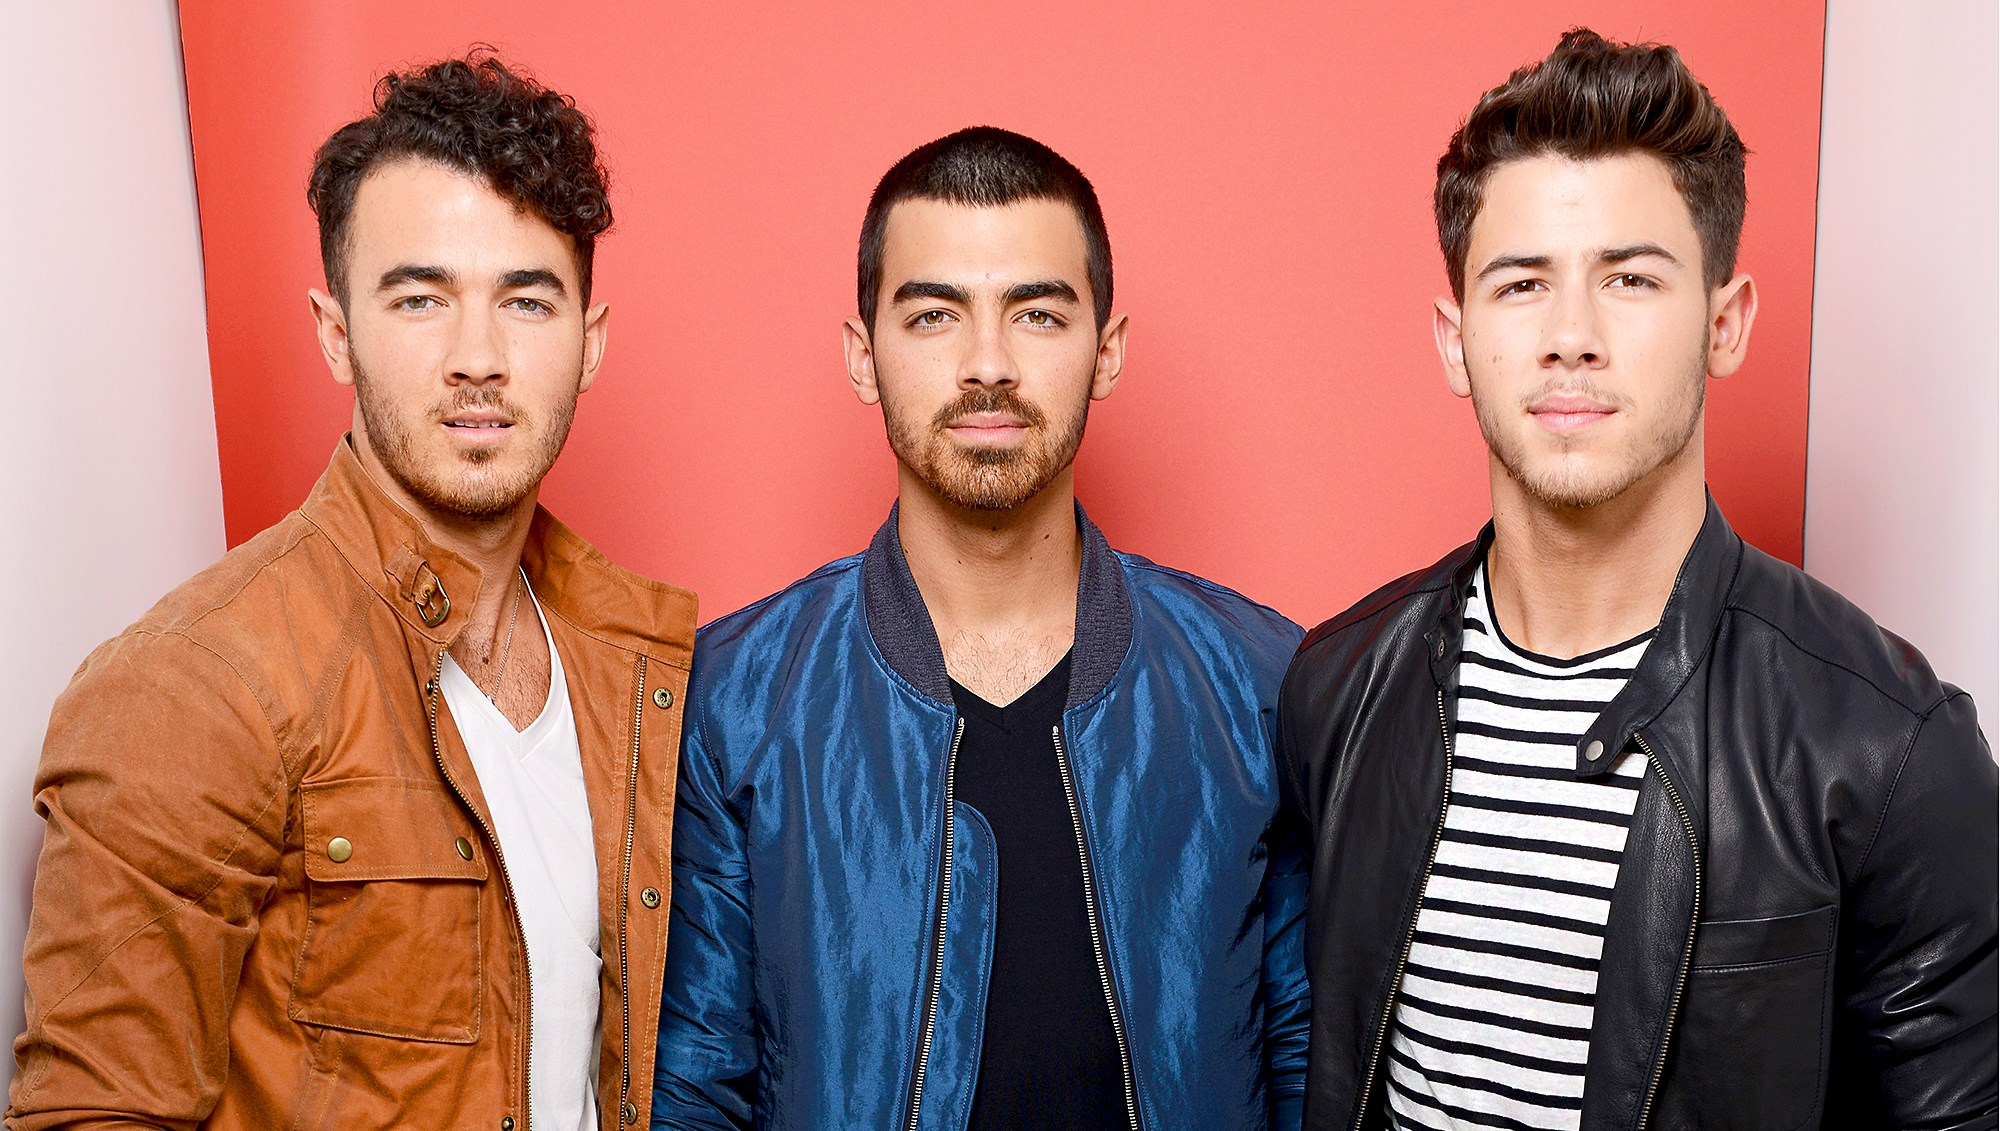 Kevin Jonas, Joe Jonas and Nick Jonas of The Jonas Brothers attend Fox Teen Choice Awards 2013 held at the Gibson Amphitheatre in Los Angeles, California.